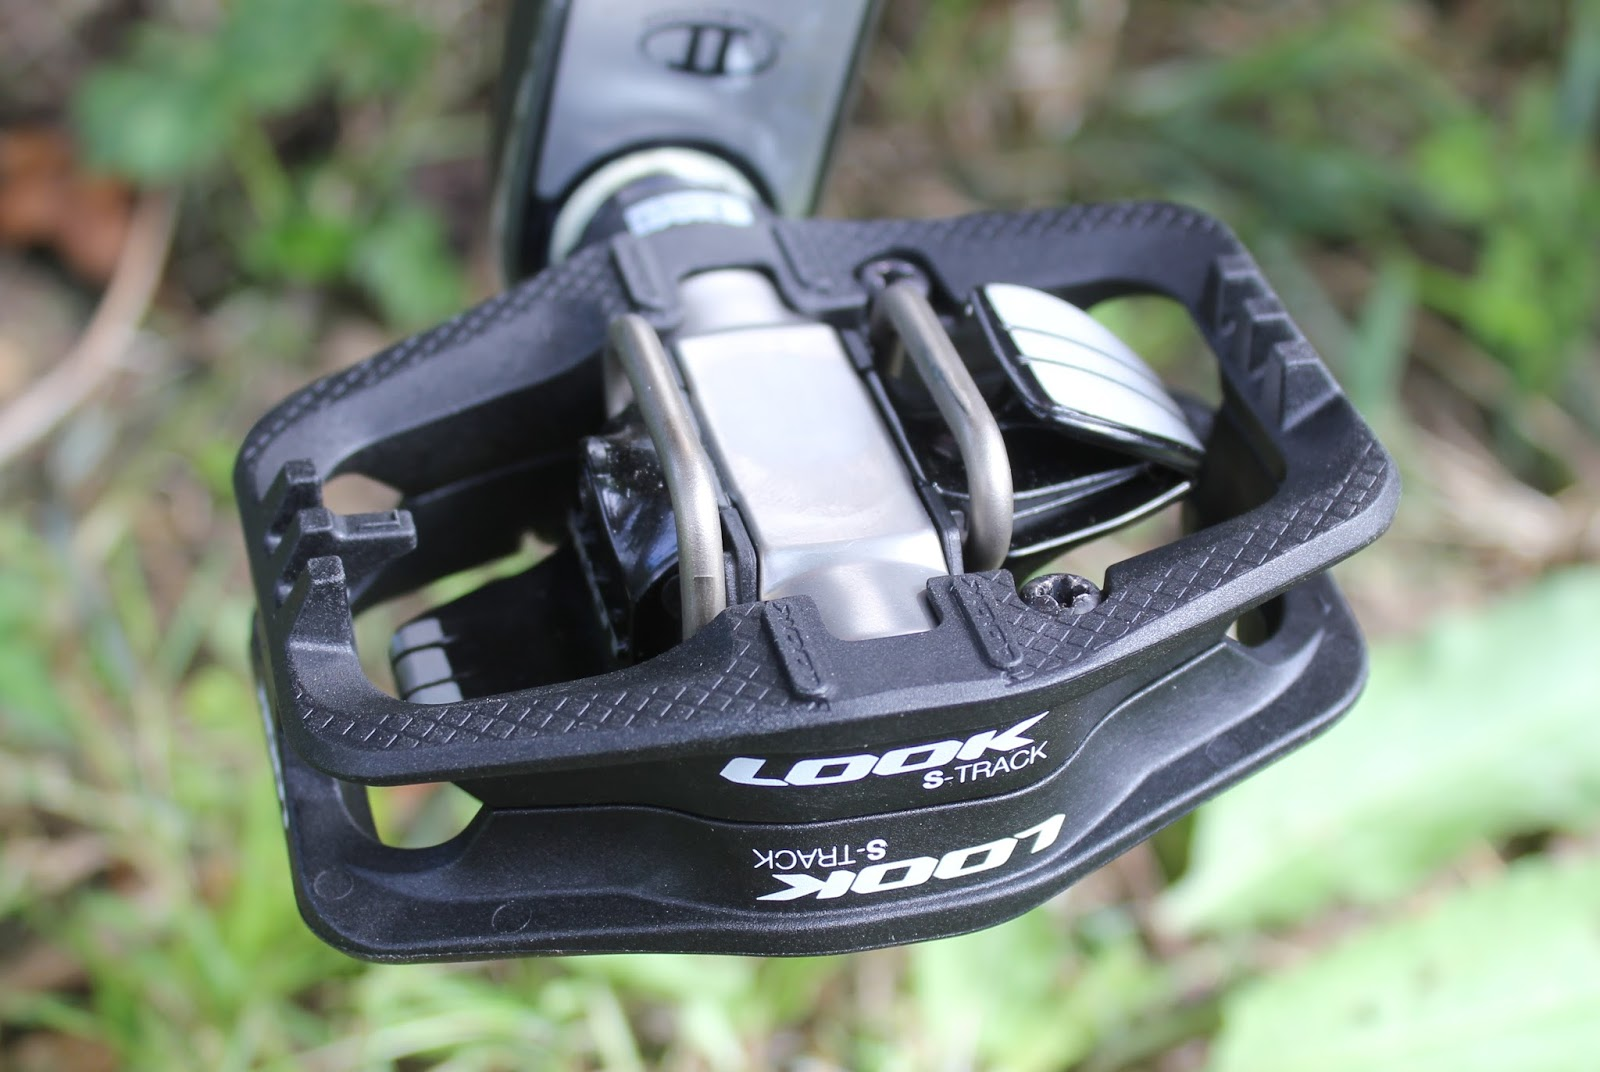 Review Look S Track Race Mountain Bike Pedals